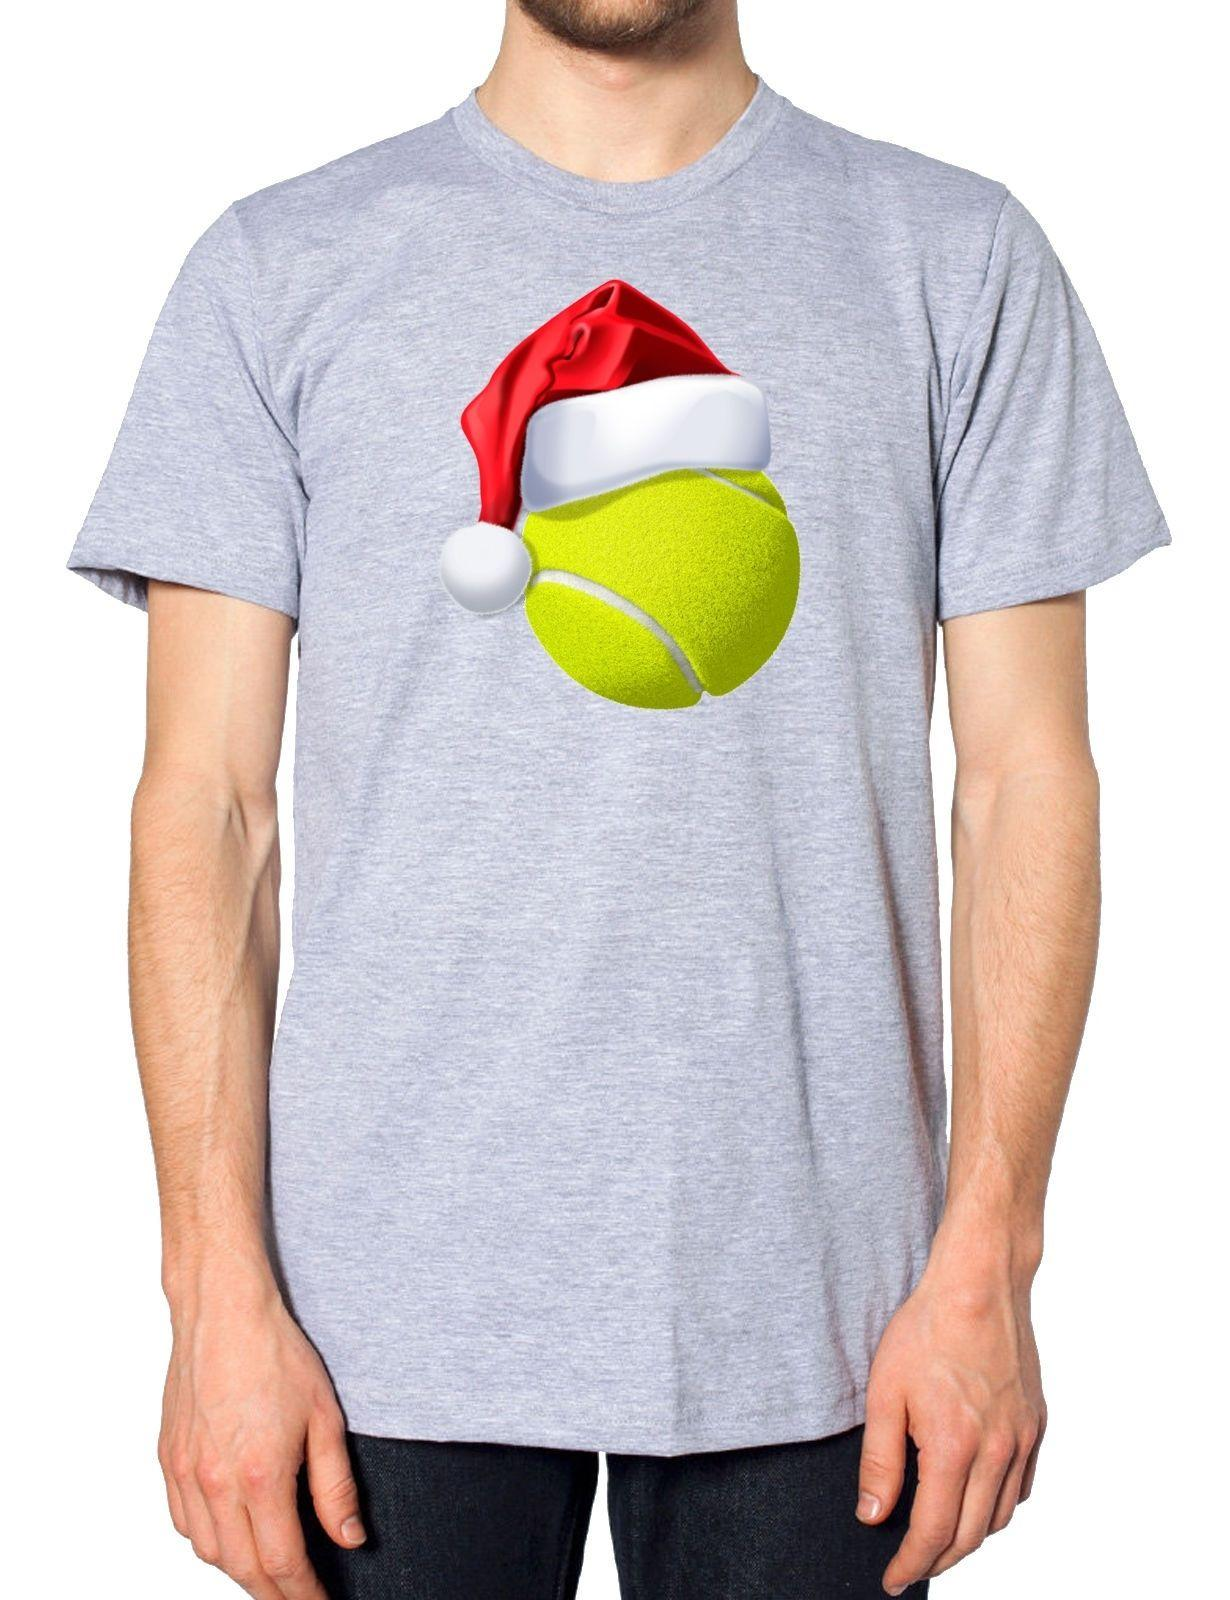 07dace2003c68 Tennis Ball Christmas Santa Hat T Shirt Sportsman Festive Novelty Joke Gift  Cool Casual Pride T Shirt Men Unisex Shirts And Tshirts Tee Shirts Sale  From ...